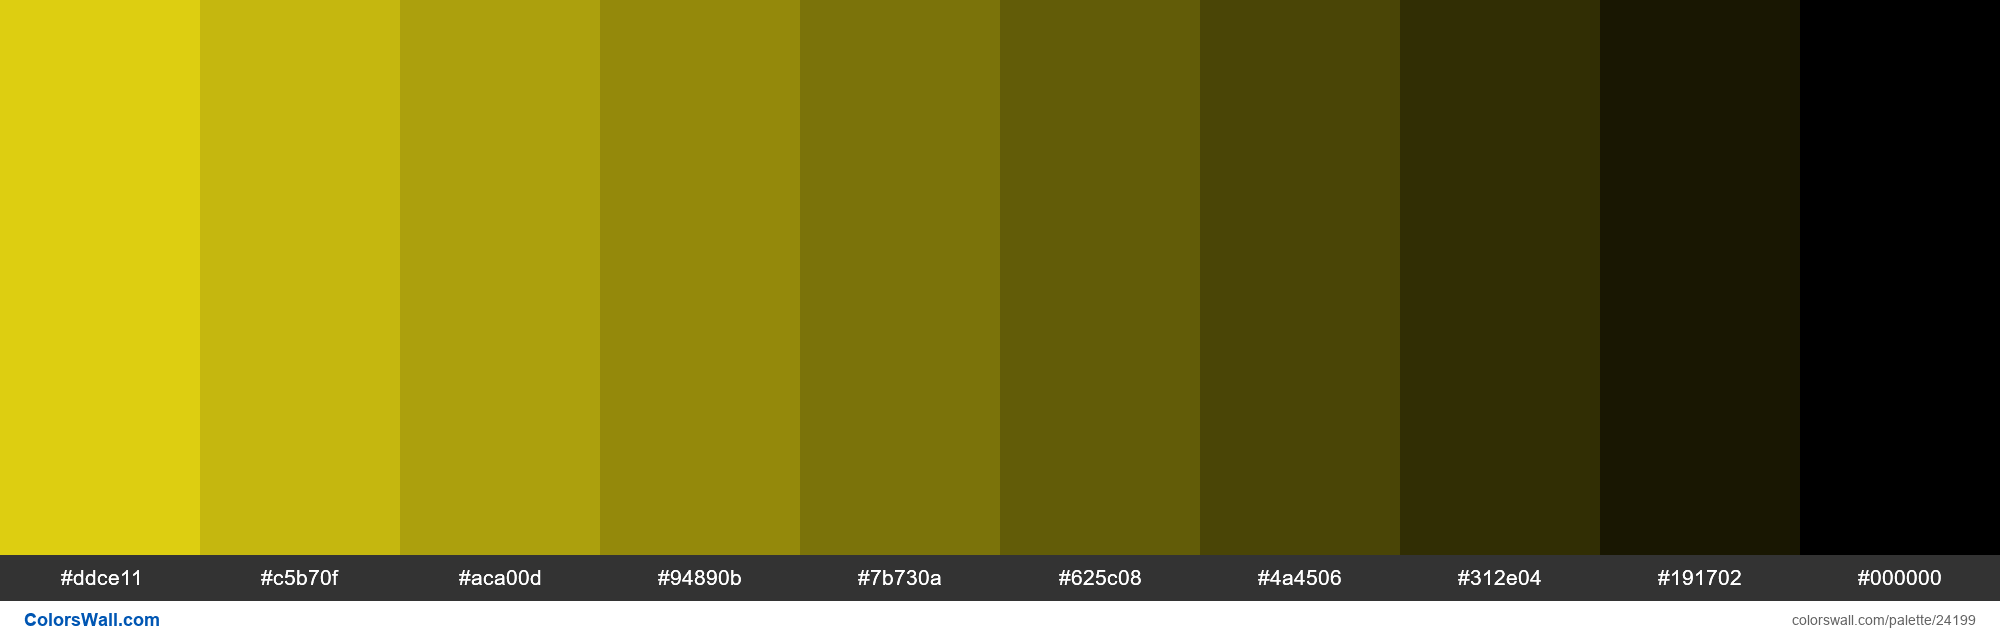 Tints of #f6e513 hex color - #24199